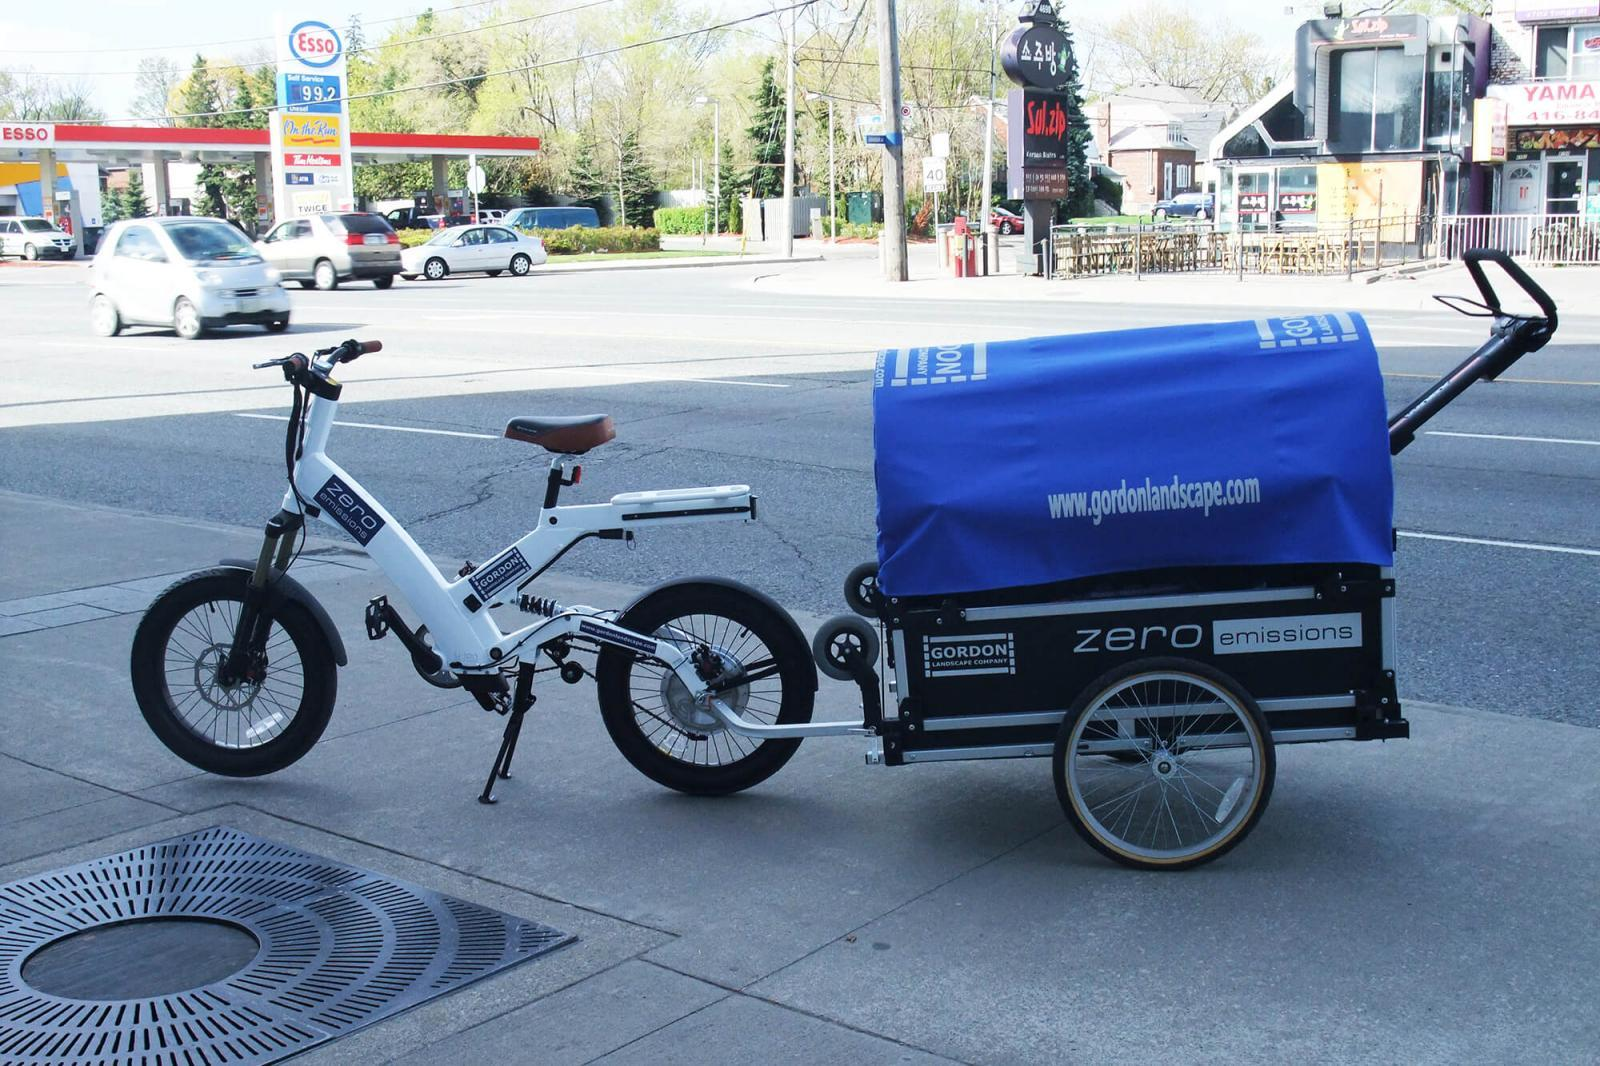 Street-legal electric bicycles are the mode of transportation for the Zero Emissions Team.